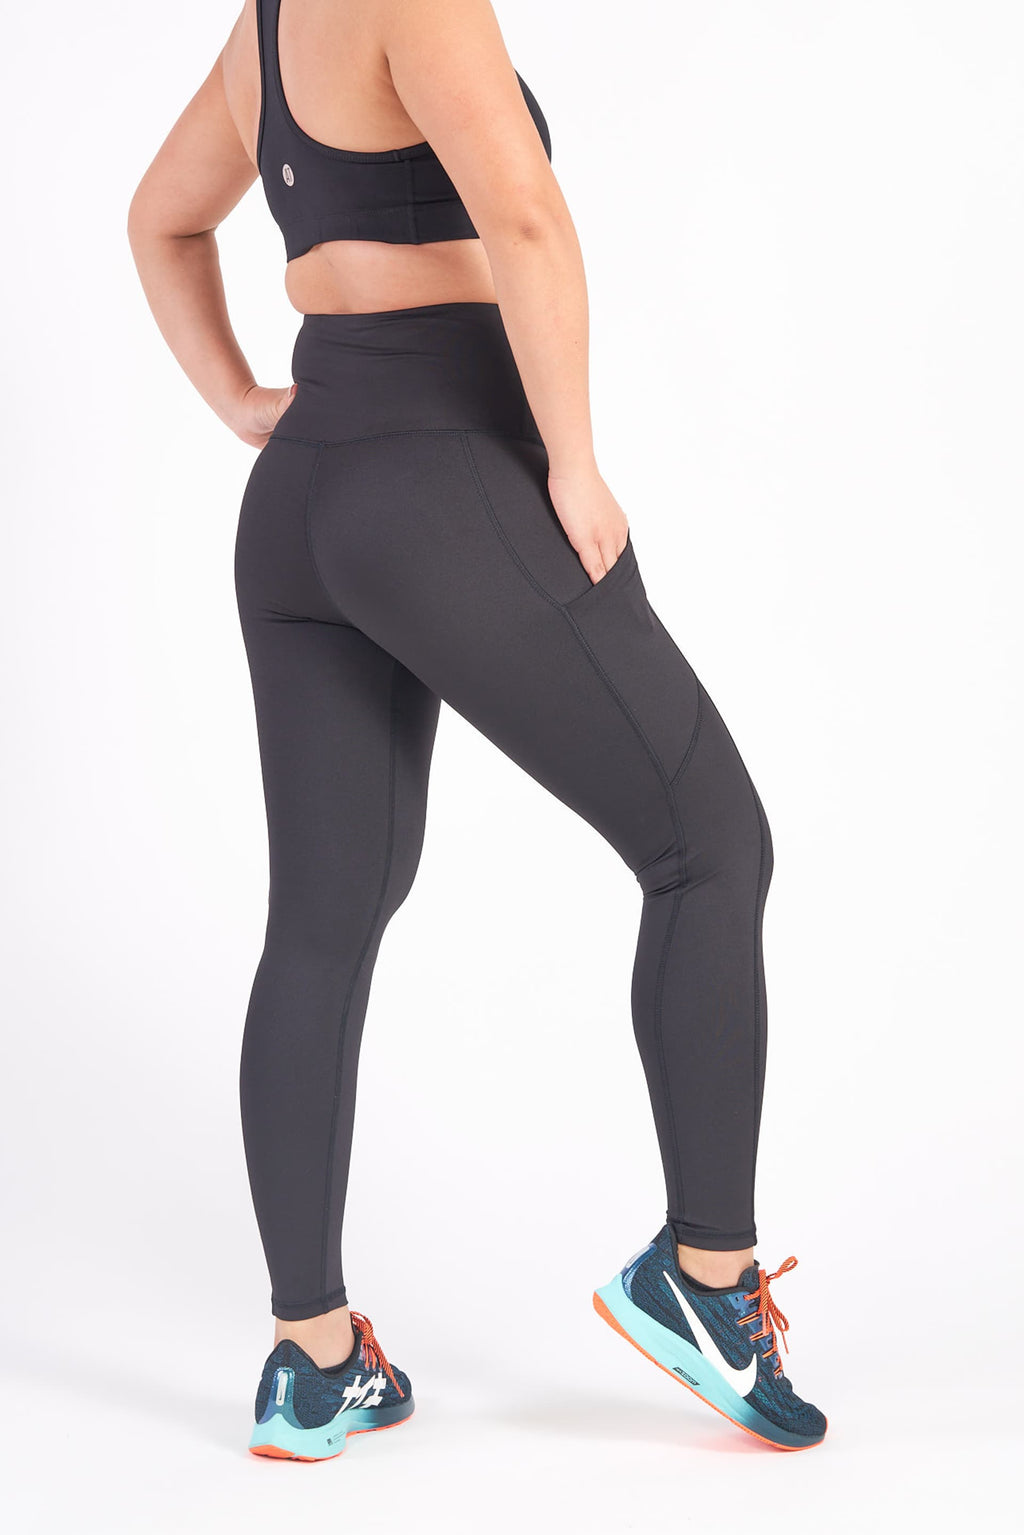 petite-full-length-compression-tights-back-small